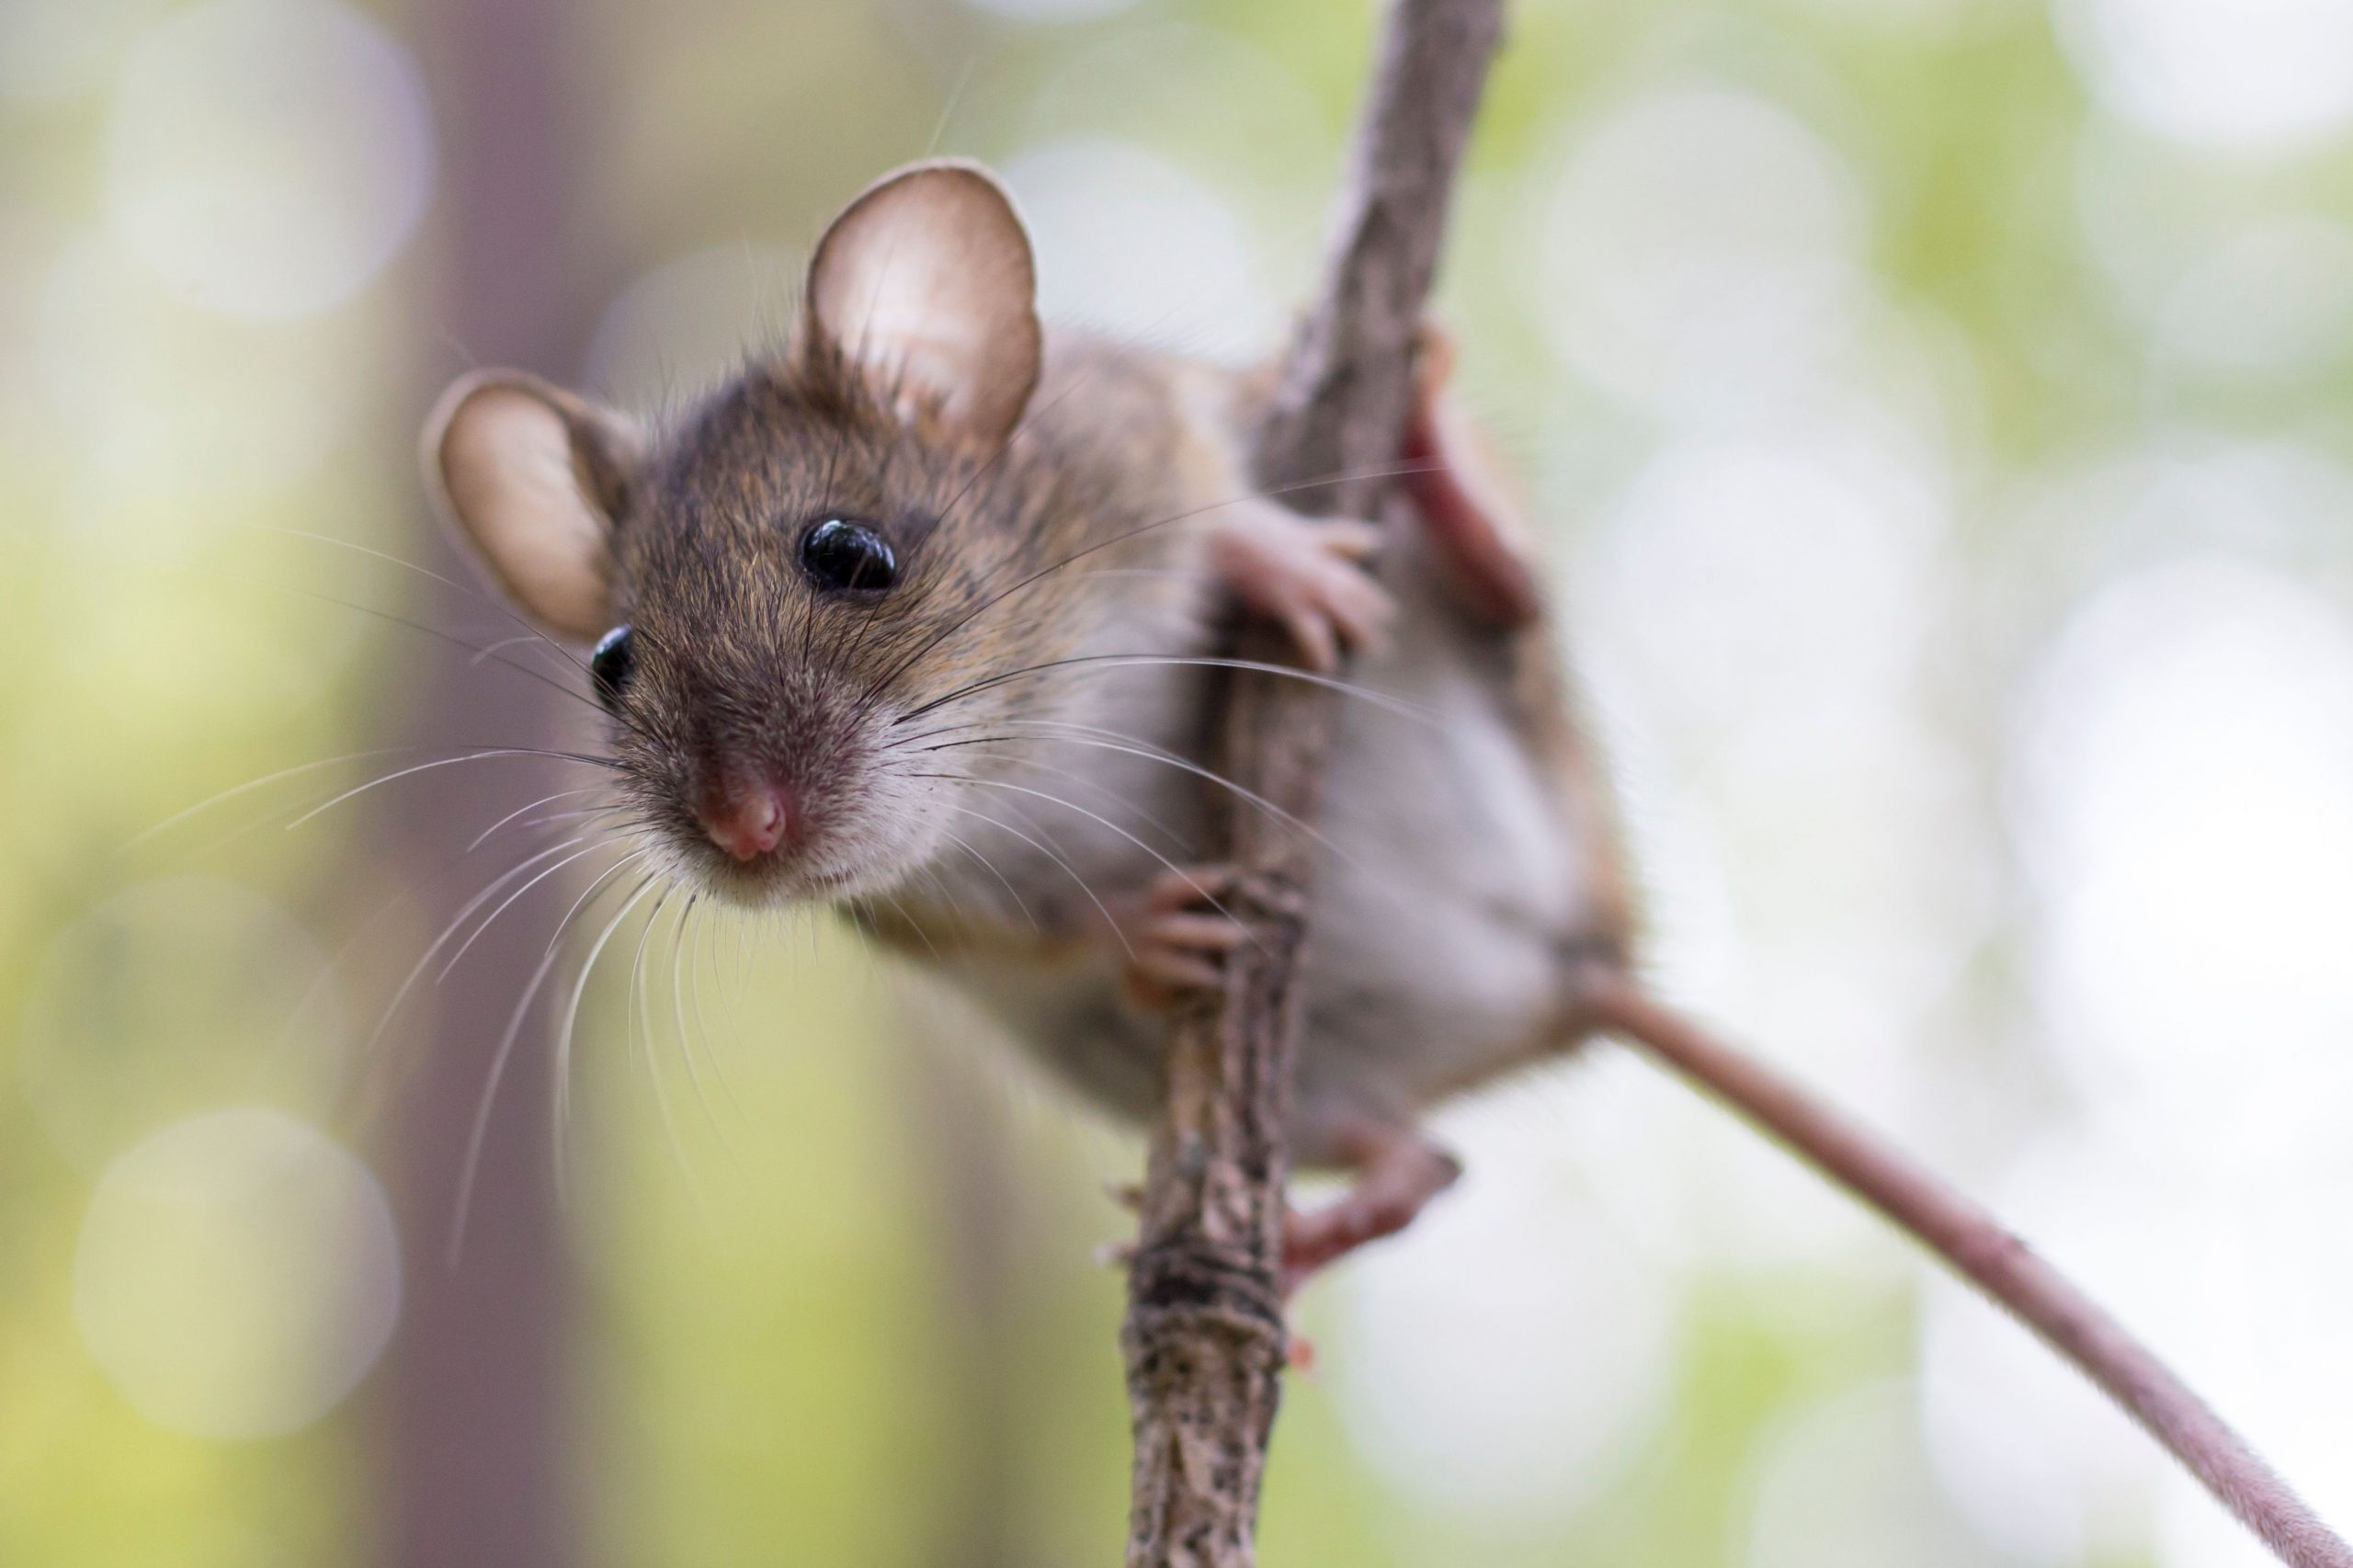 A mouse clinging to a branch